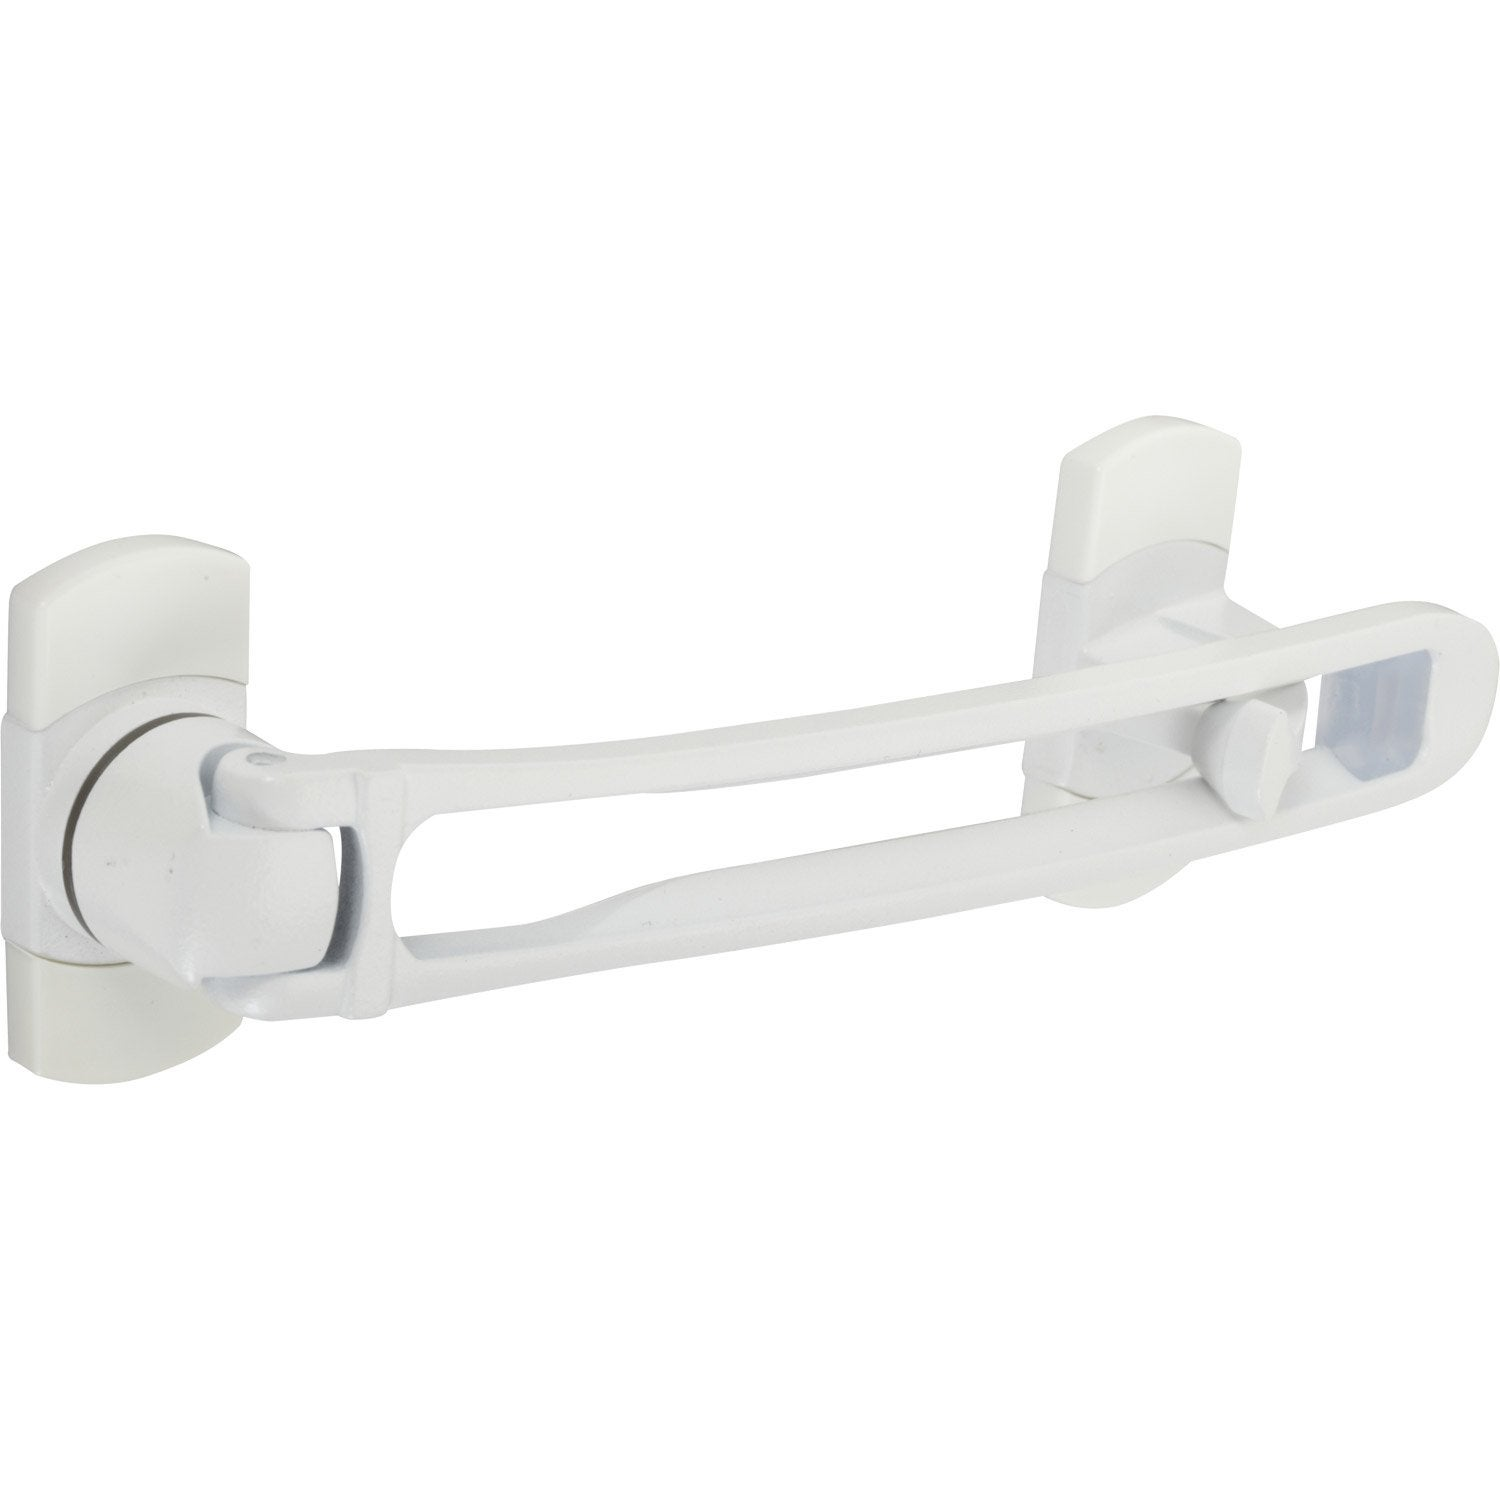 Entreb illeur de porte zamak blanc socona most leroy merlin for Bloque fenetre securite